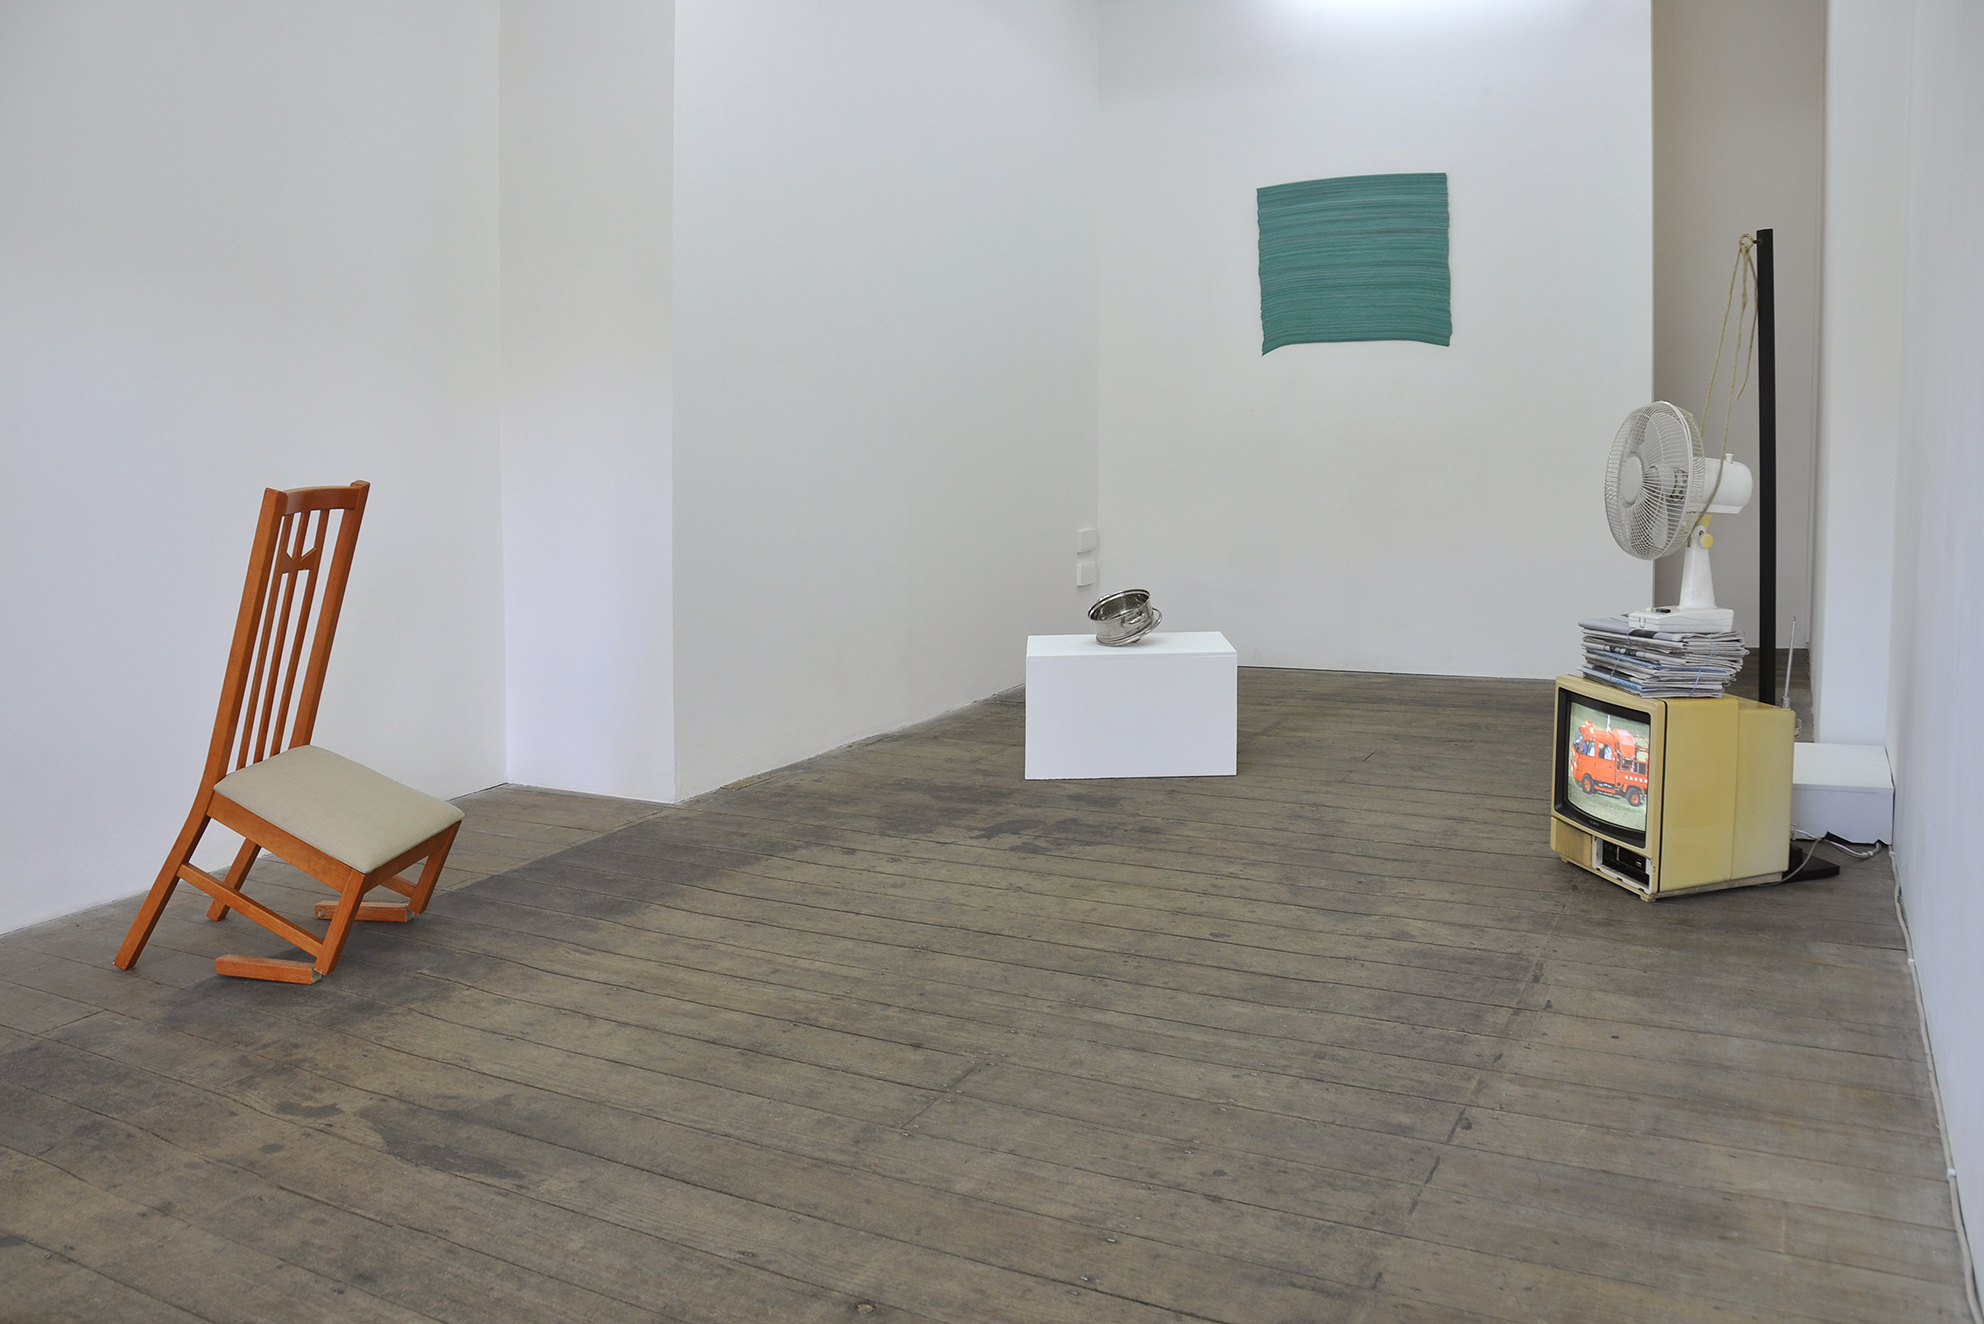 Exhibition's view